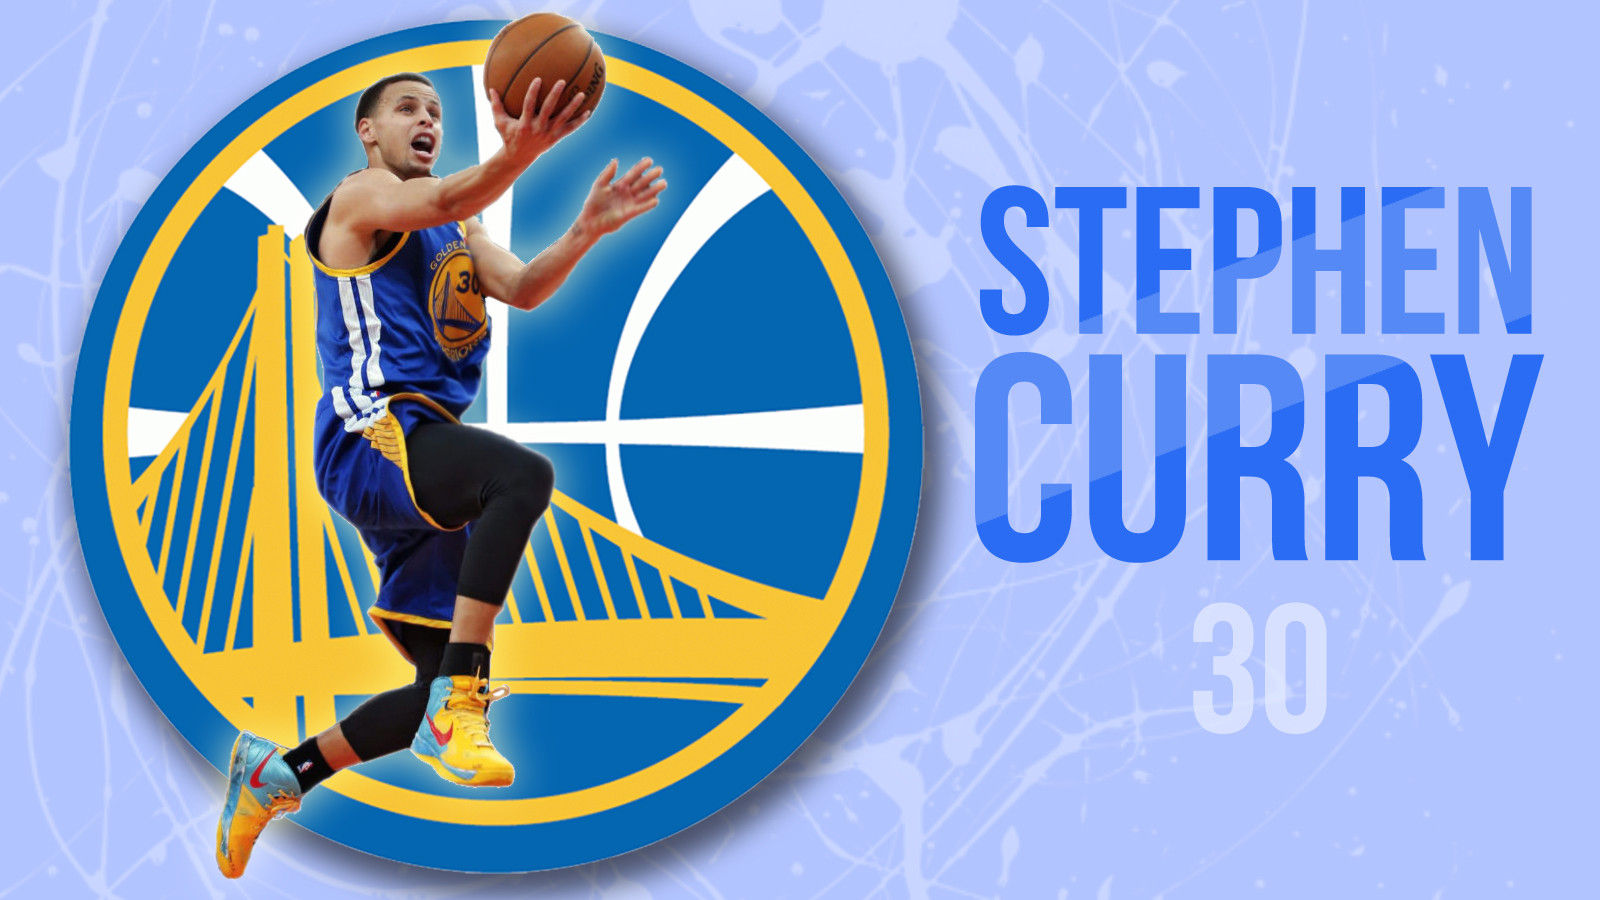 Beautiful Stephen Curry Wallpaper Full HD Pictures 1600x900